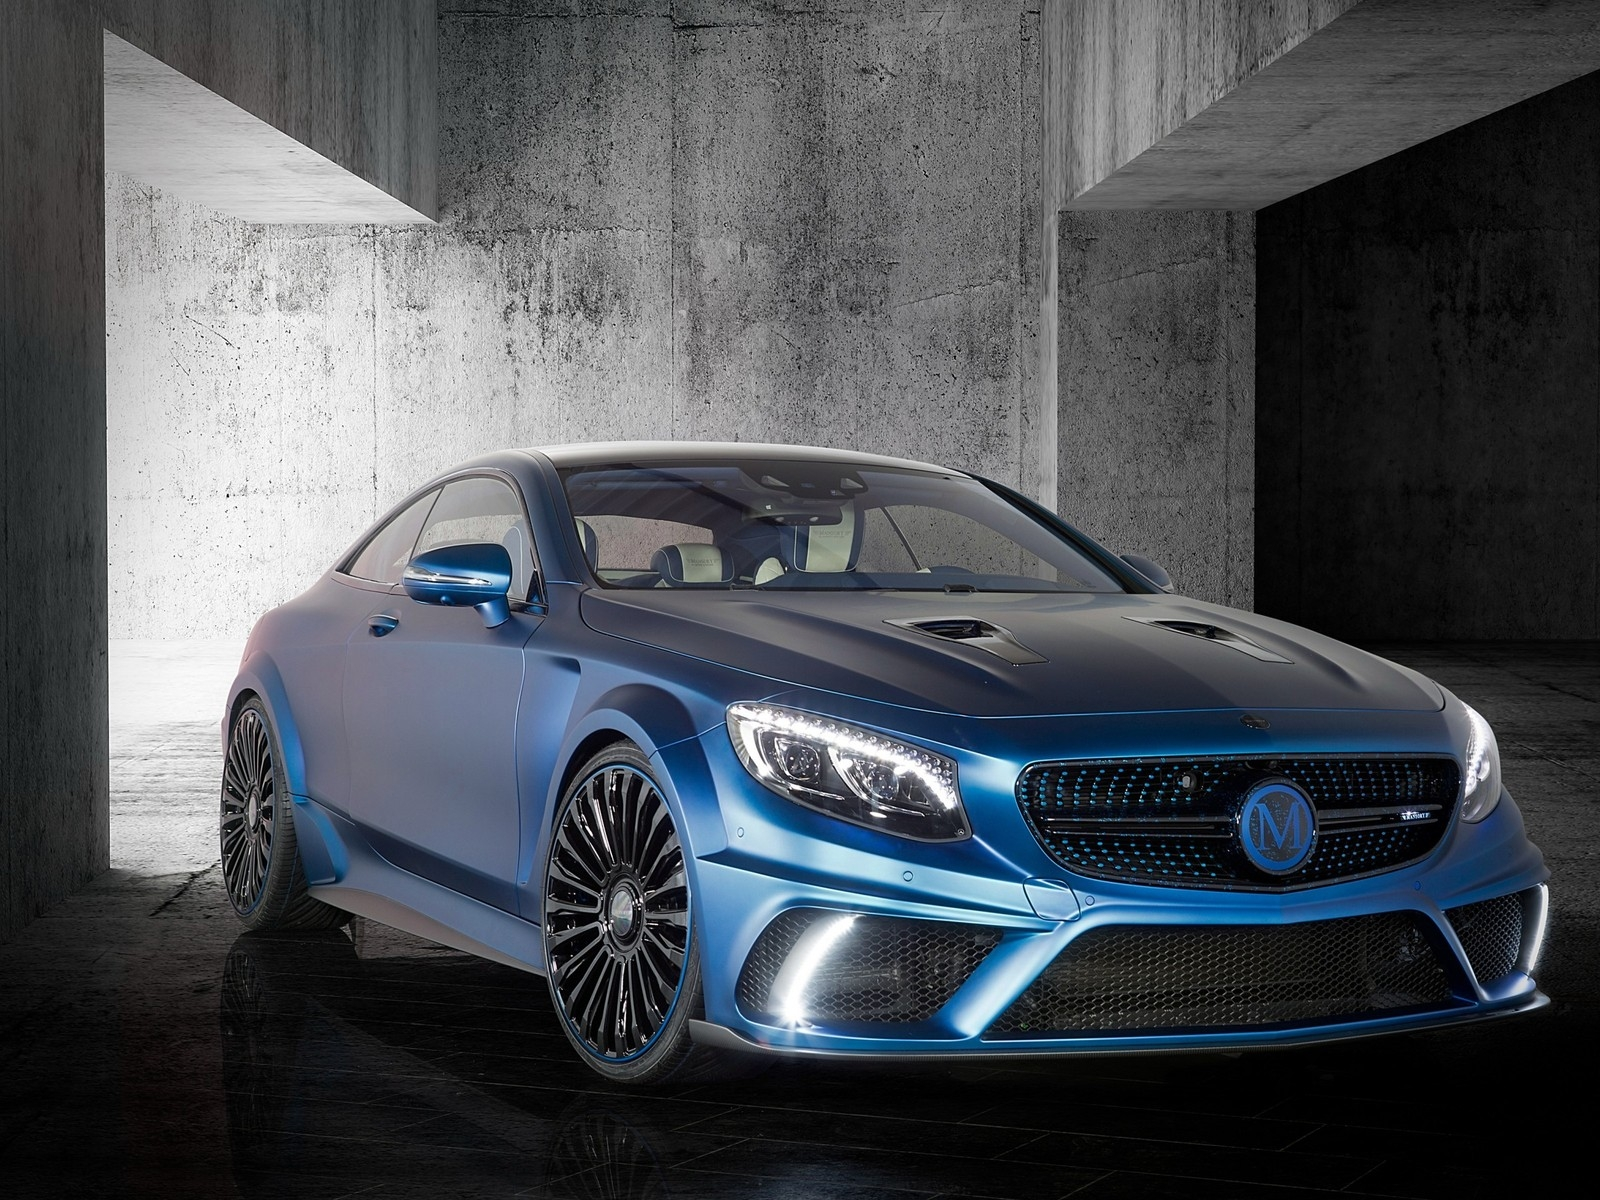 Mercedes Benz S63 AMG Brabus Diamond Edition for 1600 x 1200 resolution